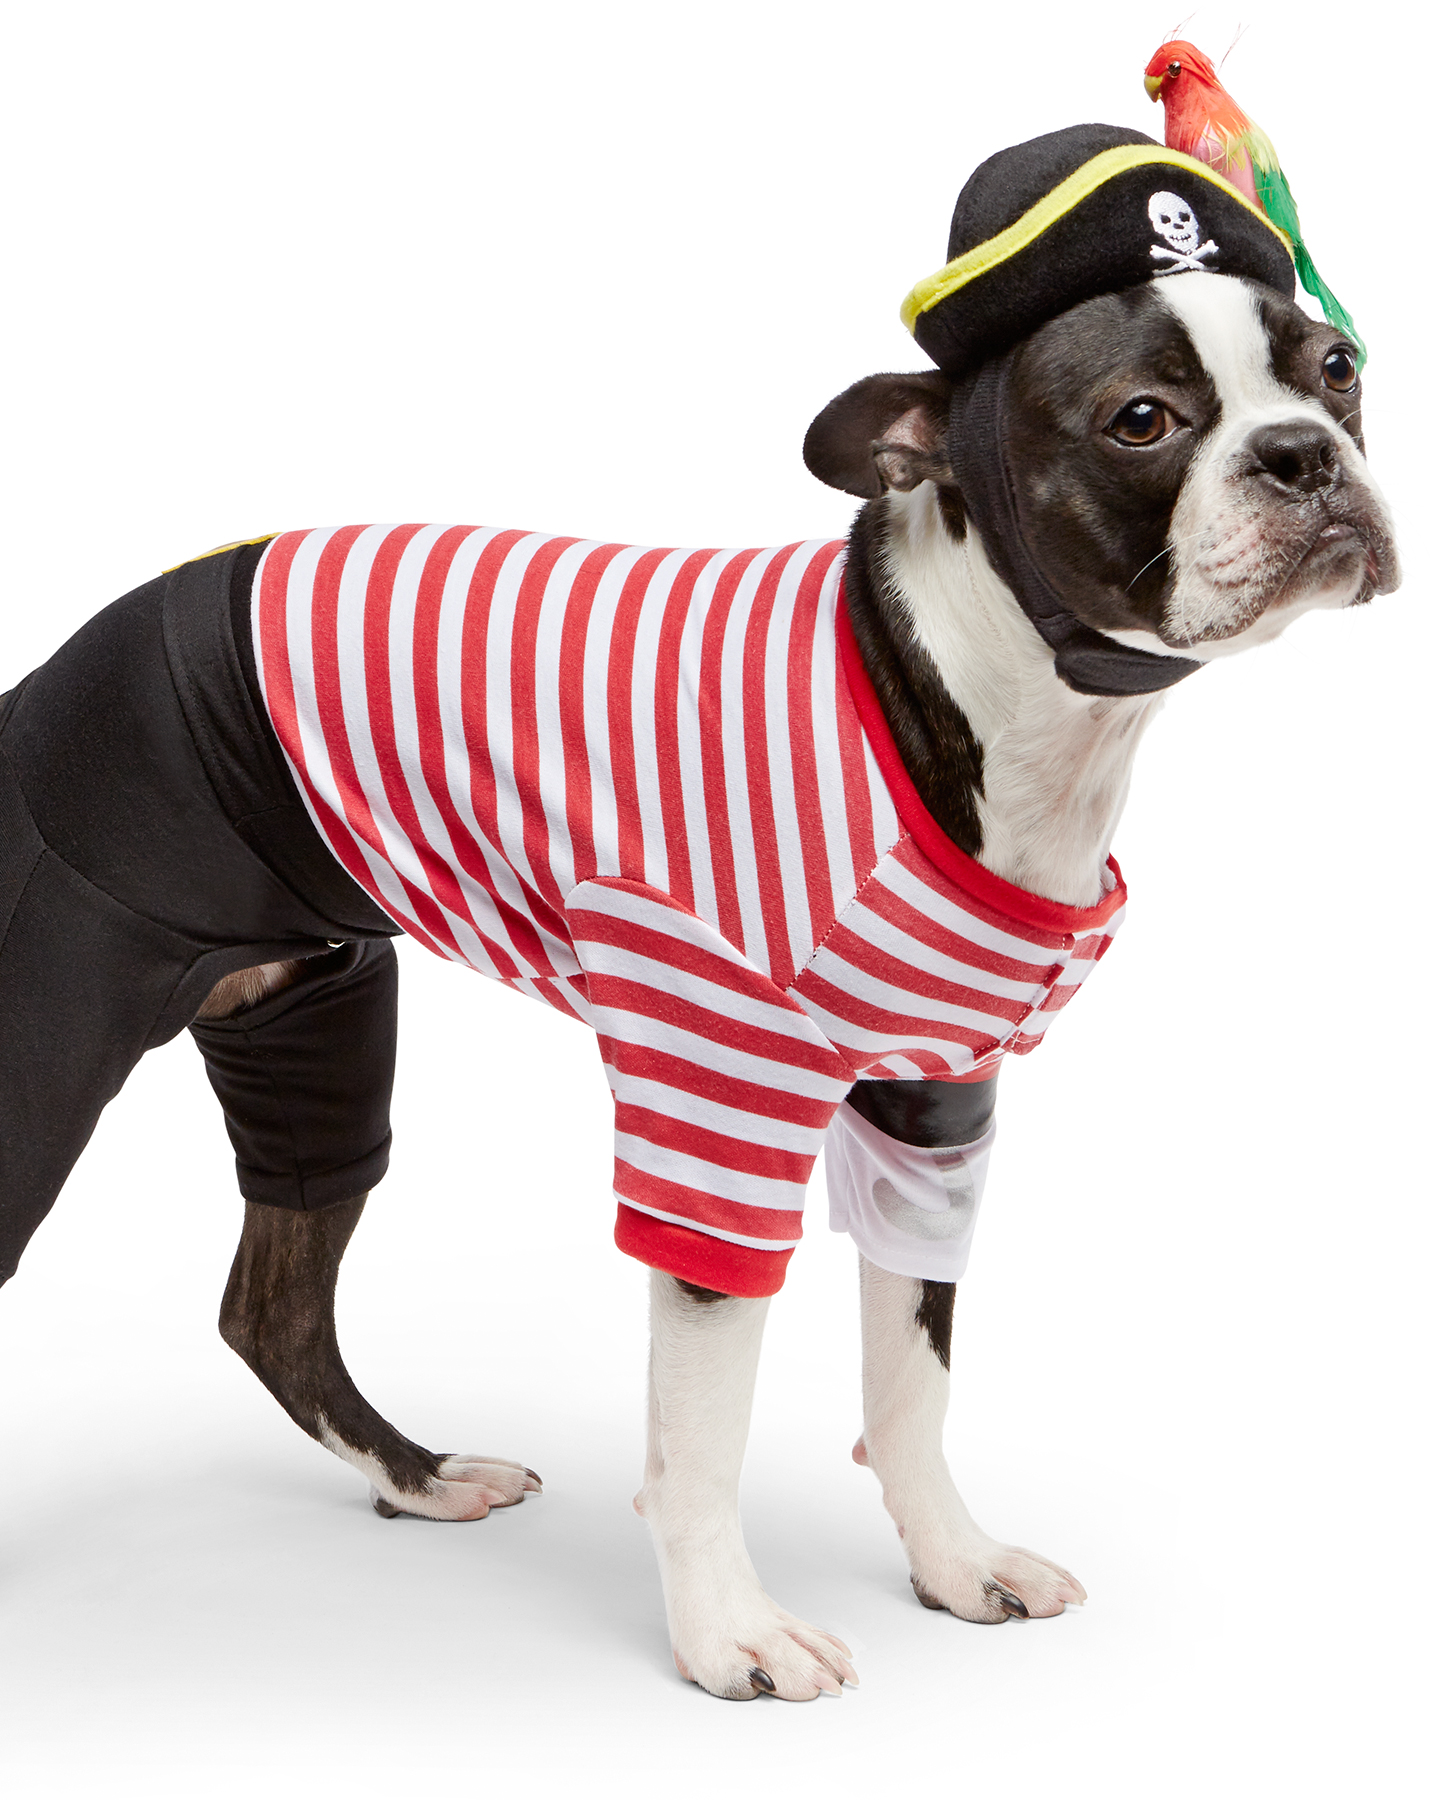 mspets-dog-halloween-piratecostume-mrkt-0915.jpg